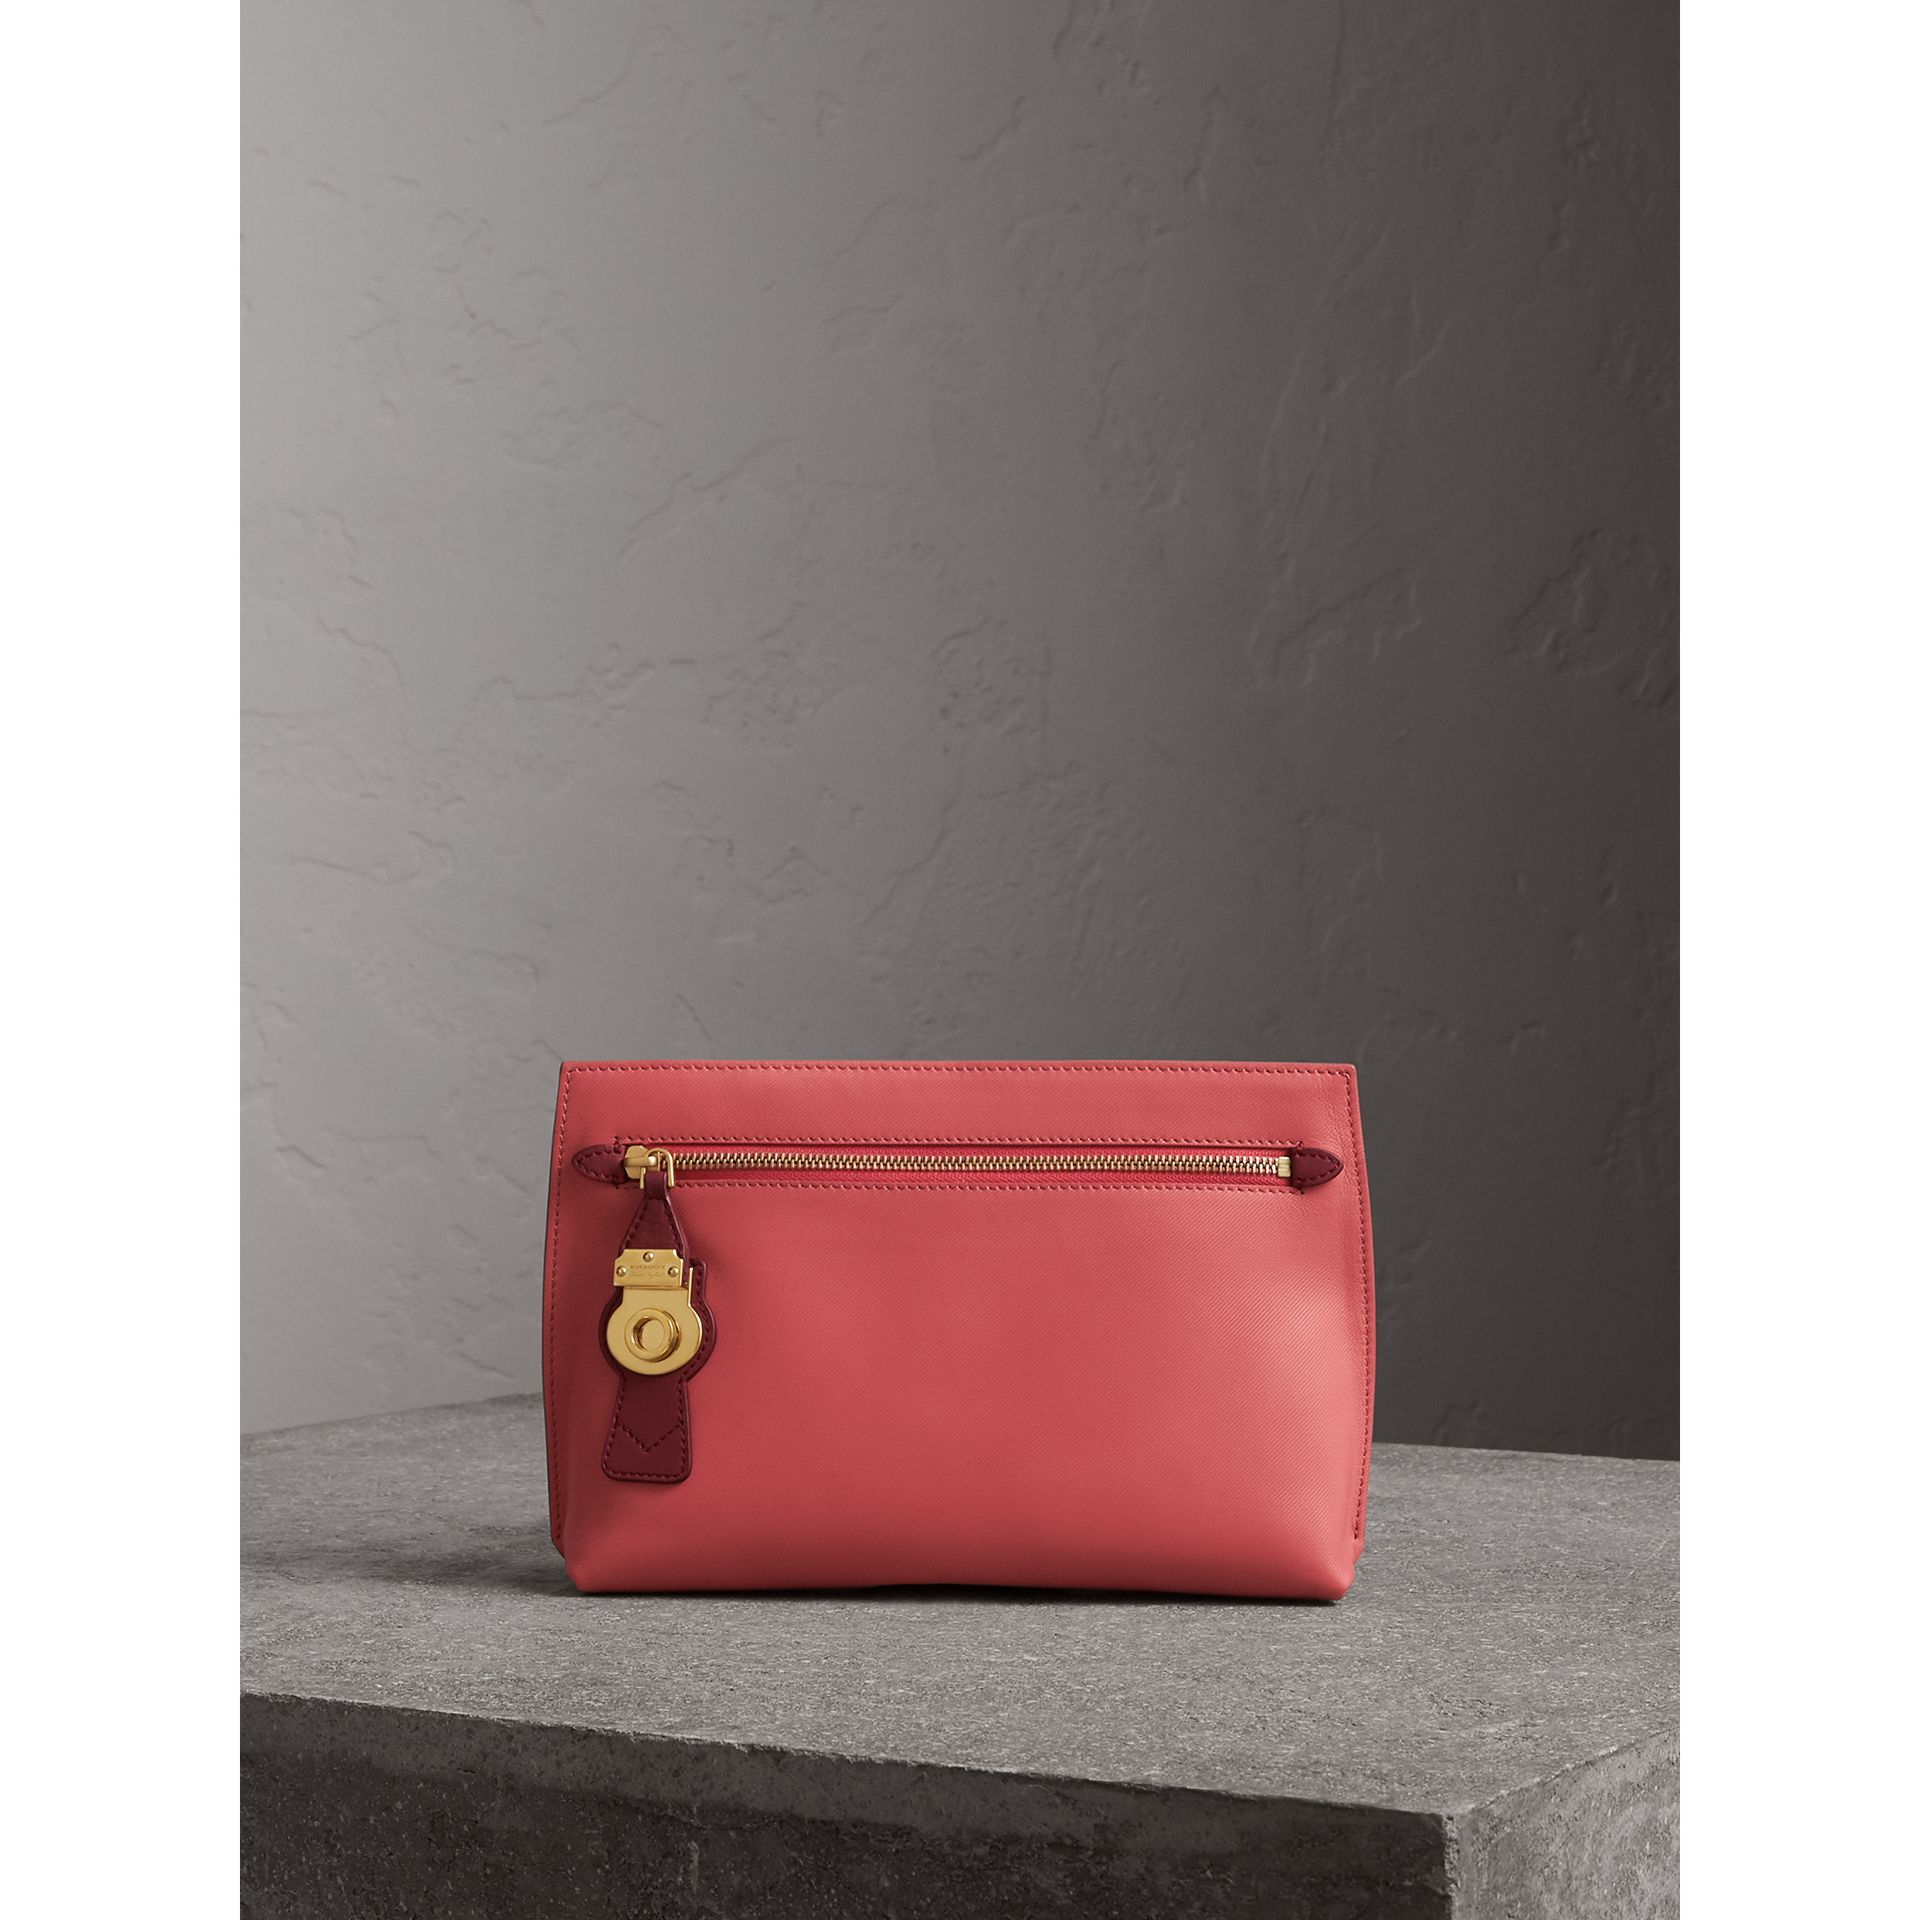 Two-tone Trench Leather Wristlet Pouch in Blossom Pink/antique Red - Women | Burberry United Kingdom - gallery image 1